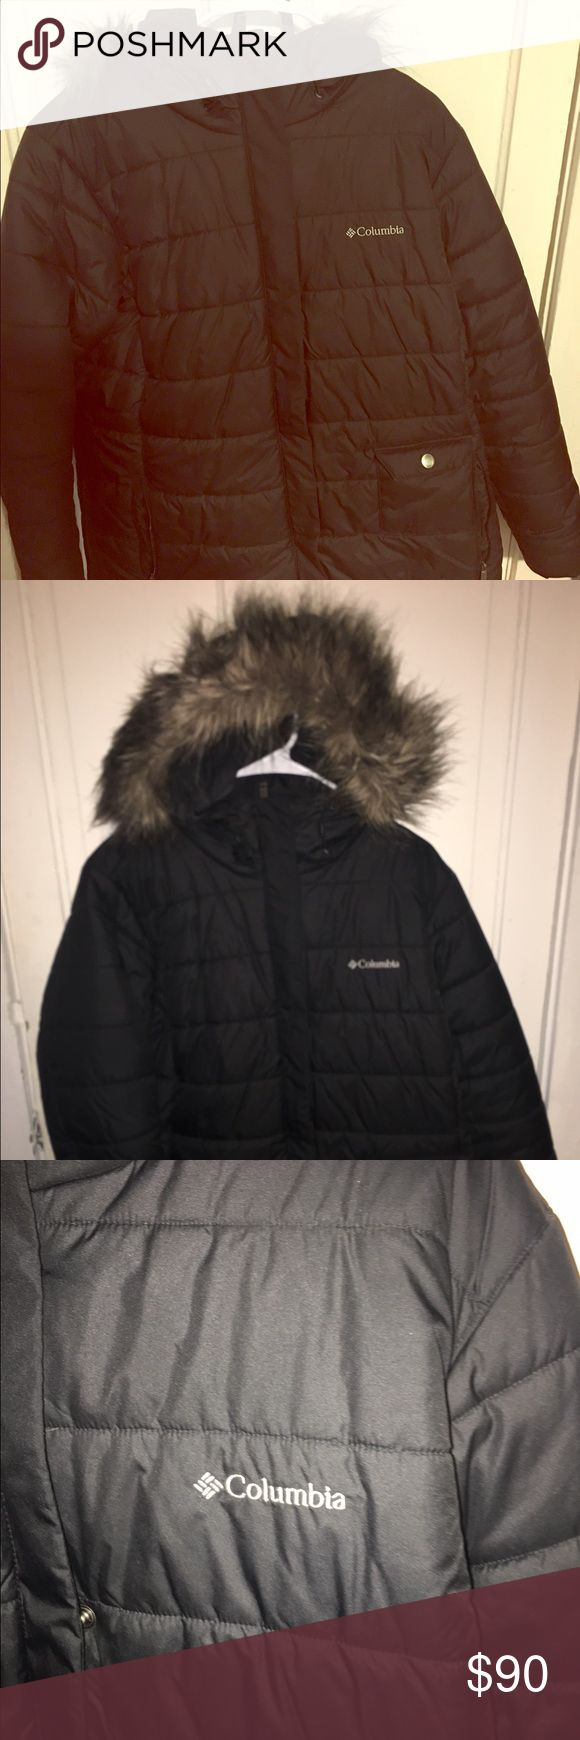 Columbia Down Coat with Fur Hood This plus size Columbia coat is in great condition! The inside tag has been removed, but the coat is a 1x. In perfect condition! Columbia Jackets & Coats Puffers